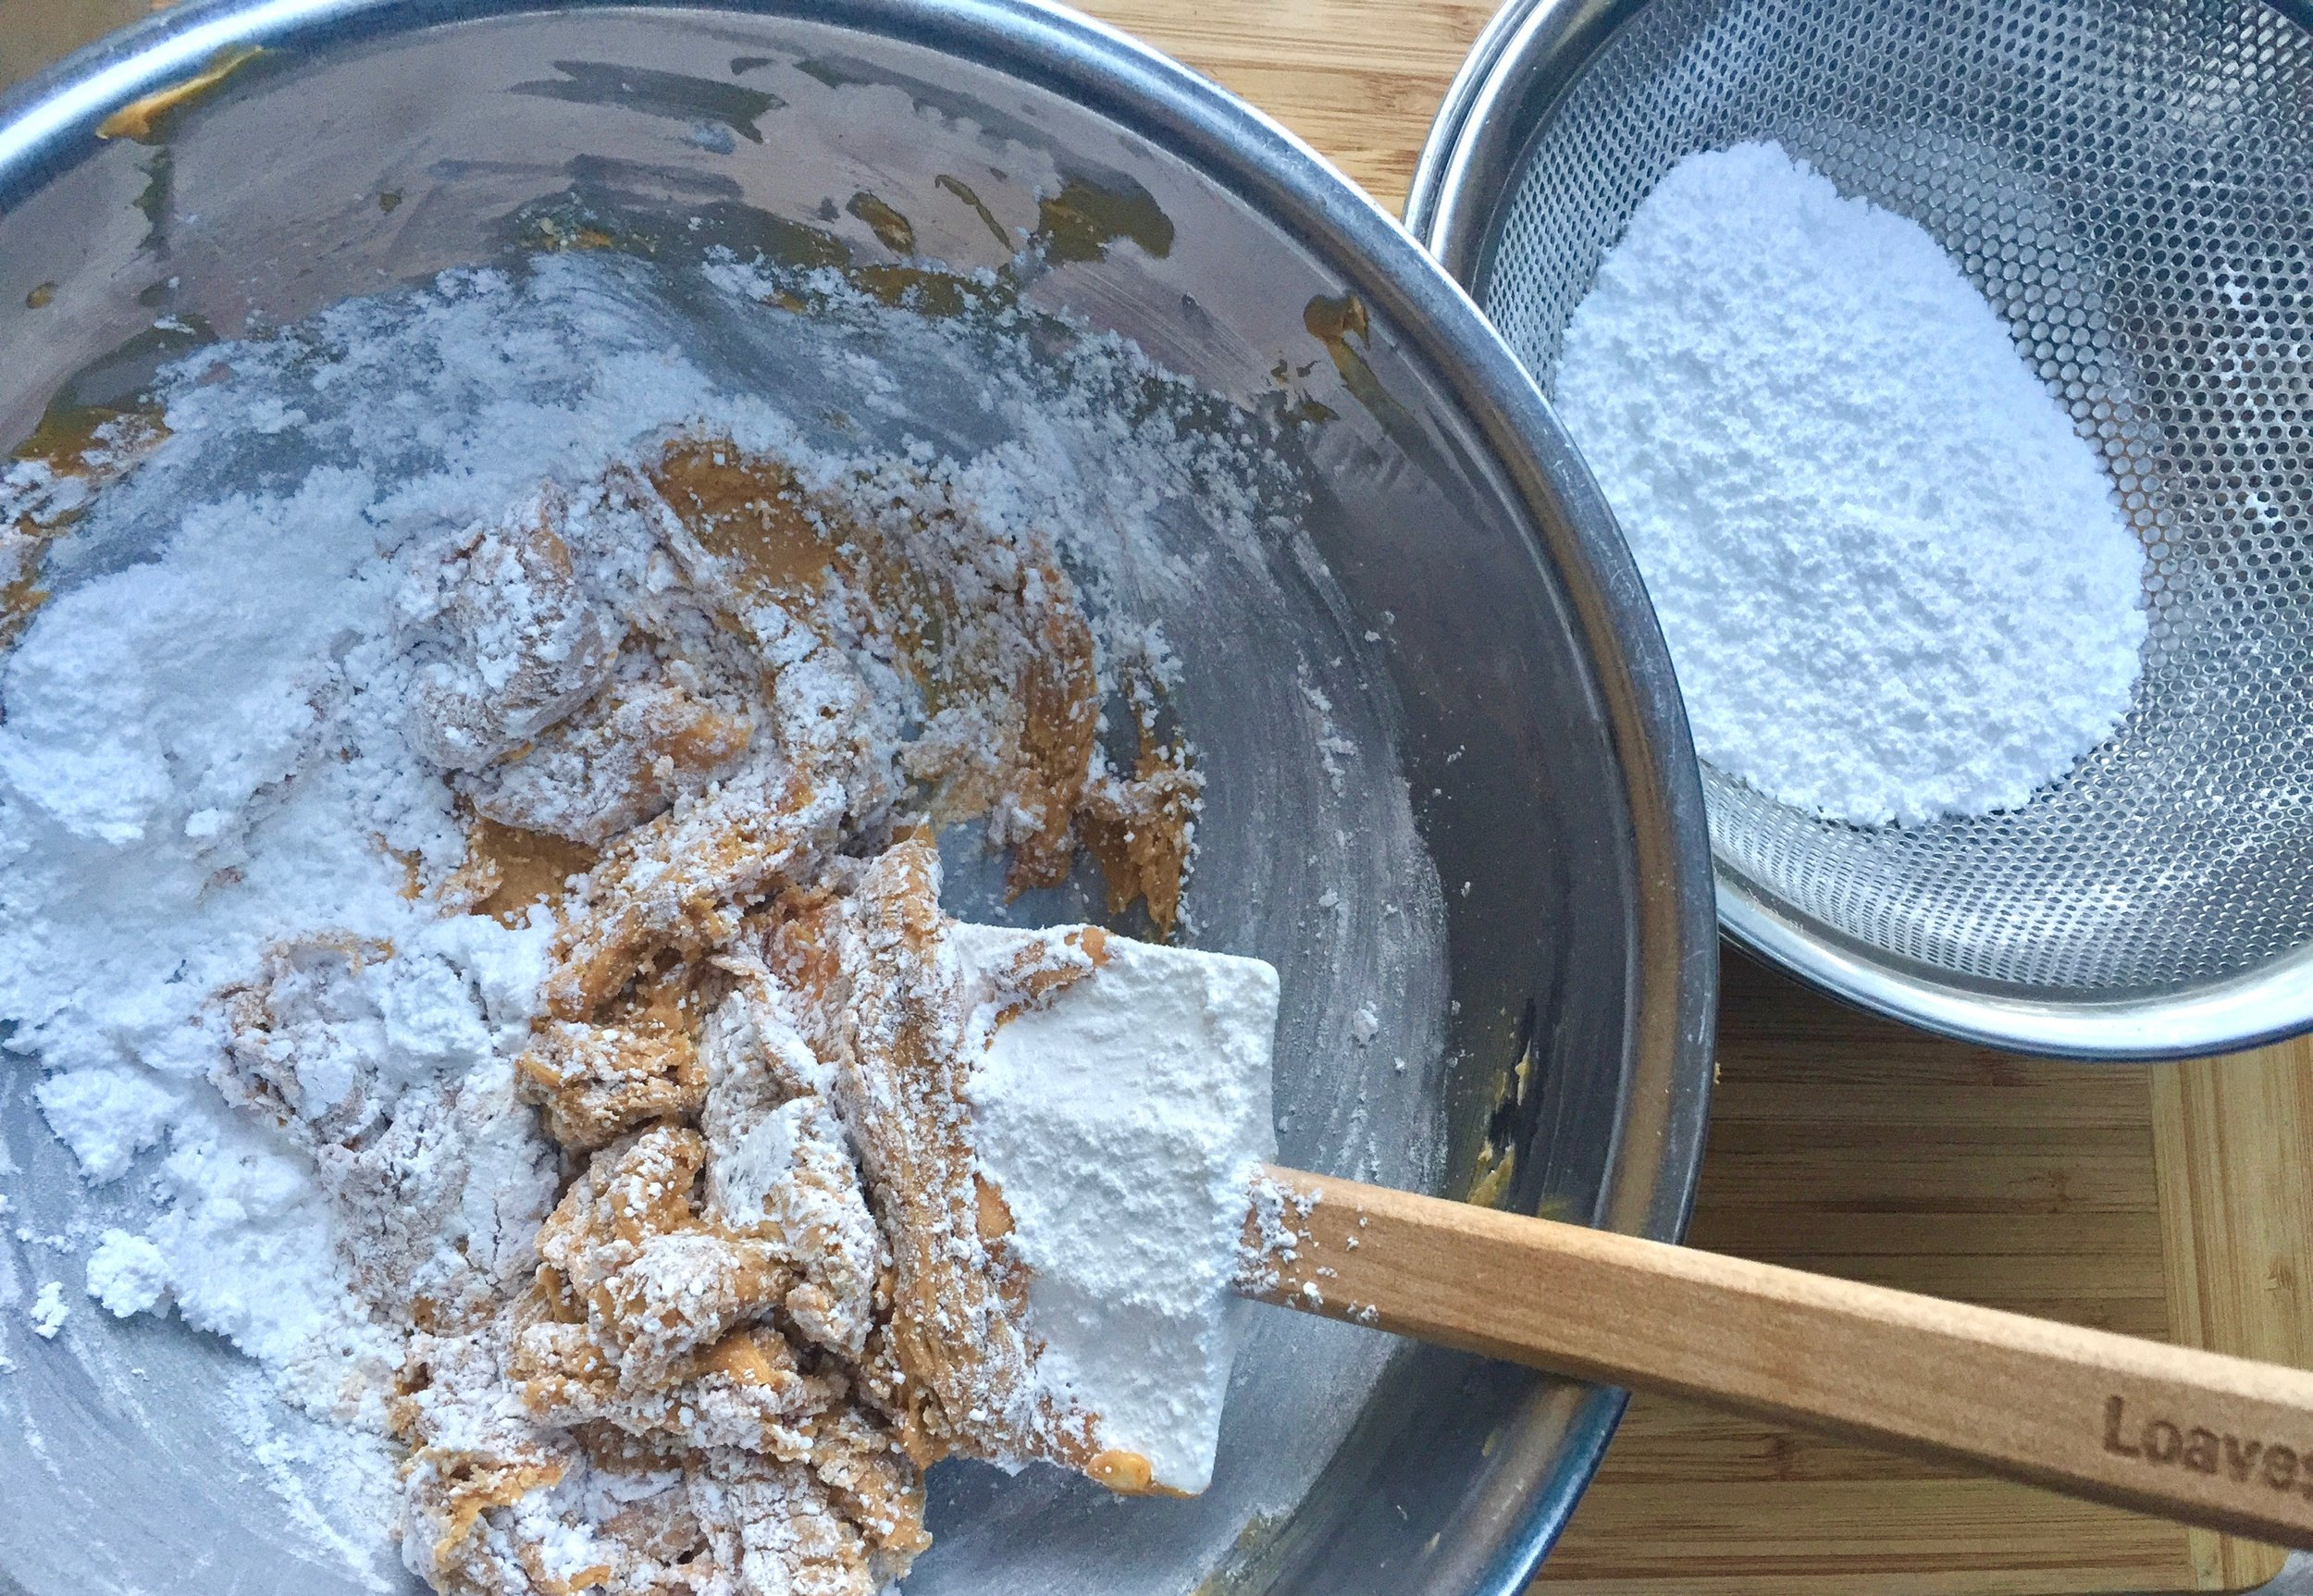 Mixing confectioners sugar into the peanut butter mixture.